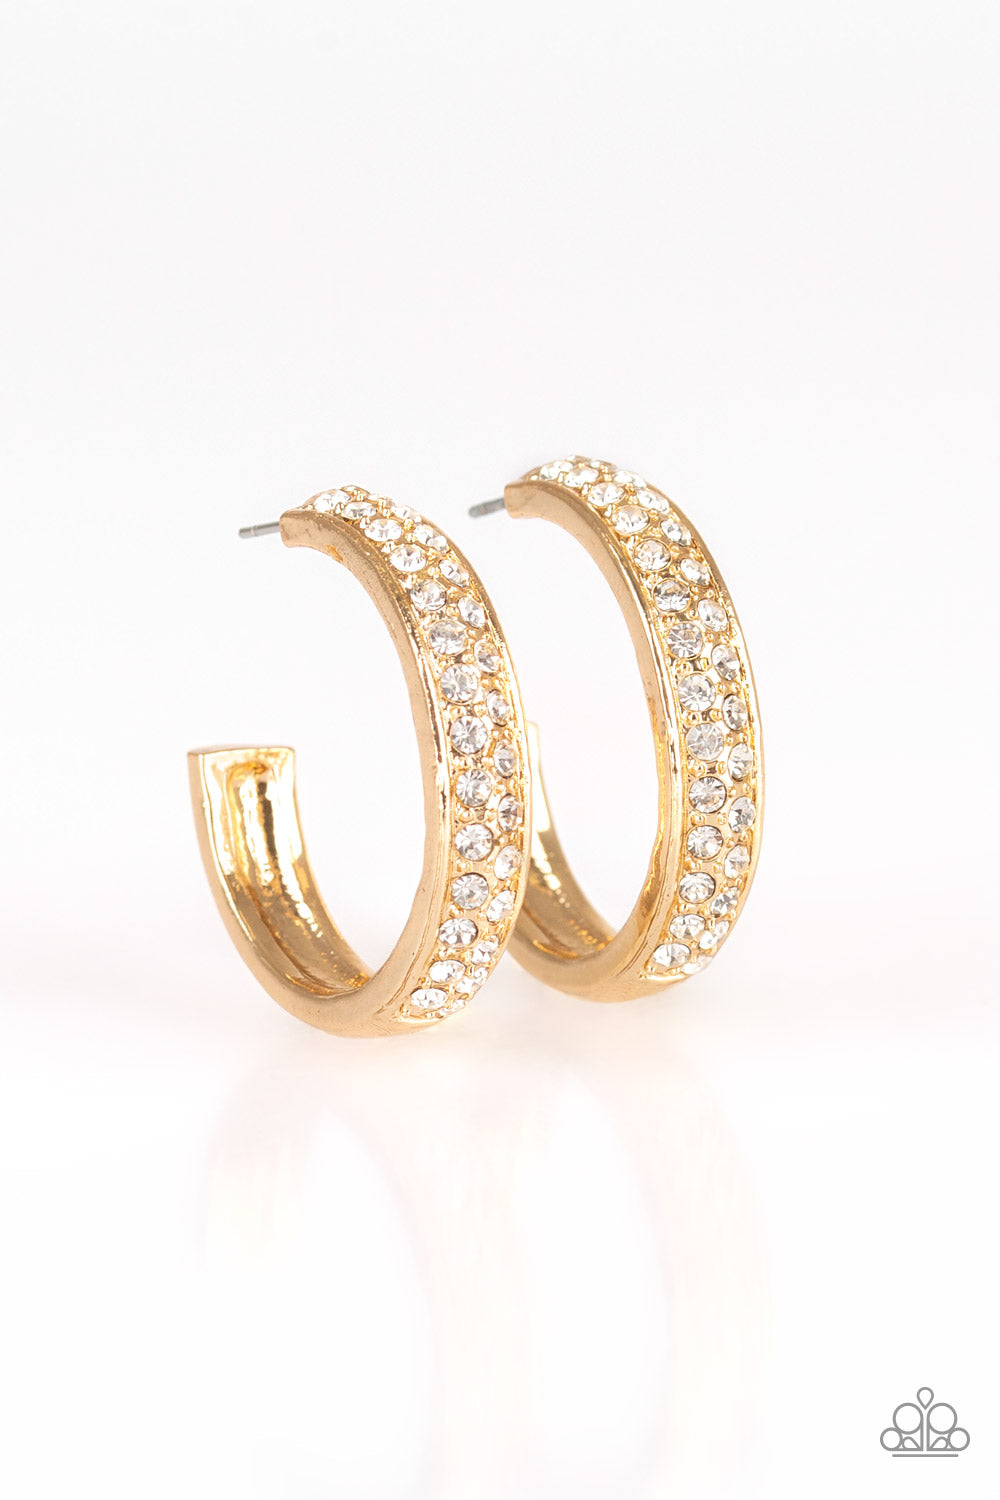 Cash Flow - Gold Earring